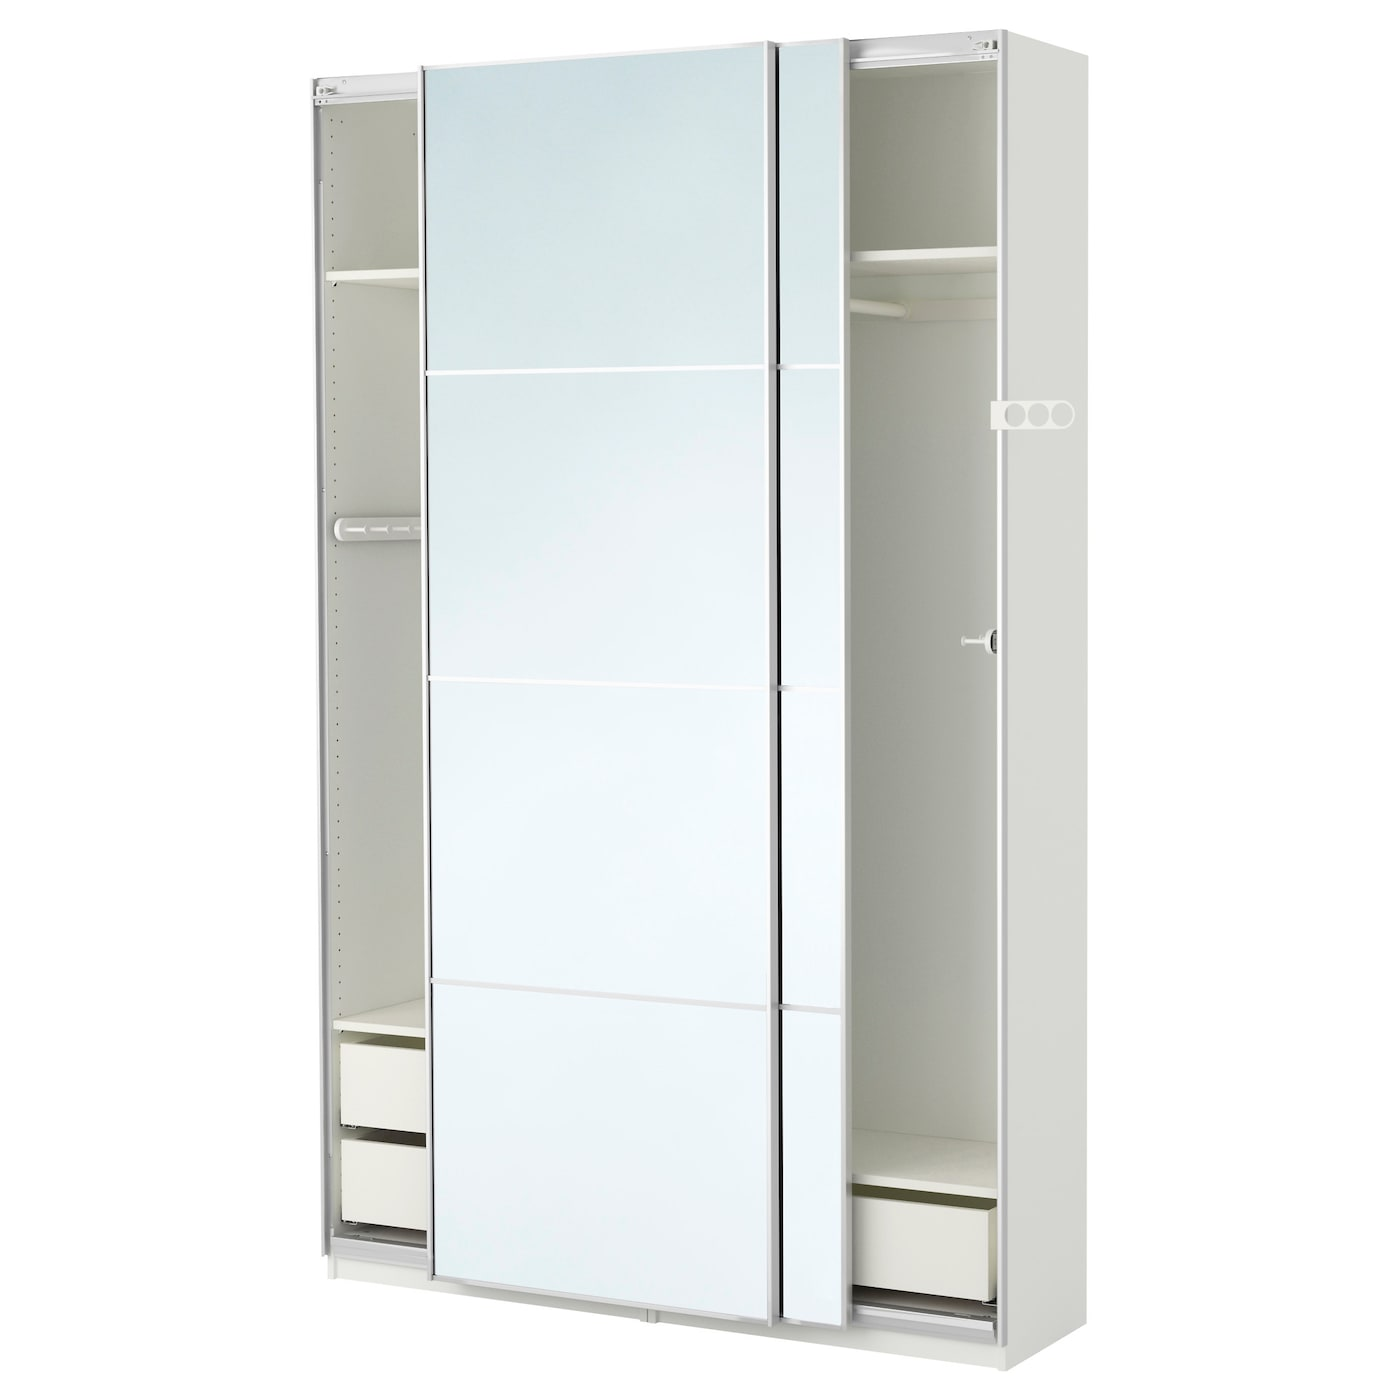 Pax wardrobe white auli mirror glass 150x44x236 cm ikea for Miroir 30 cm largeur